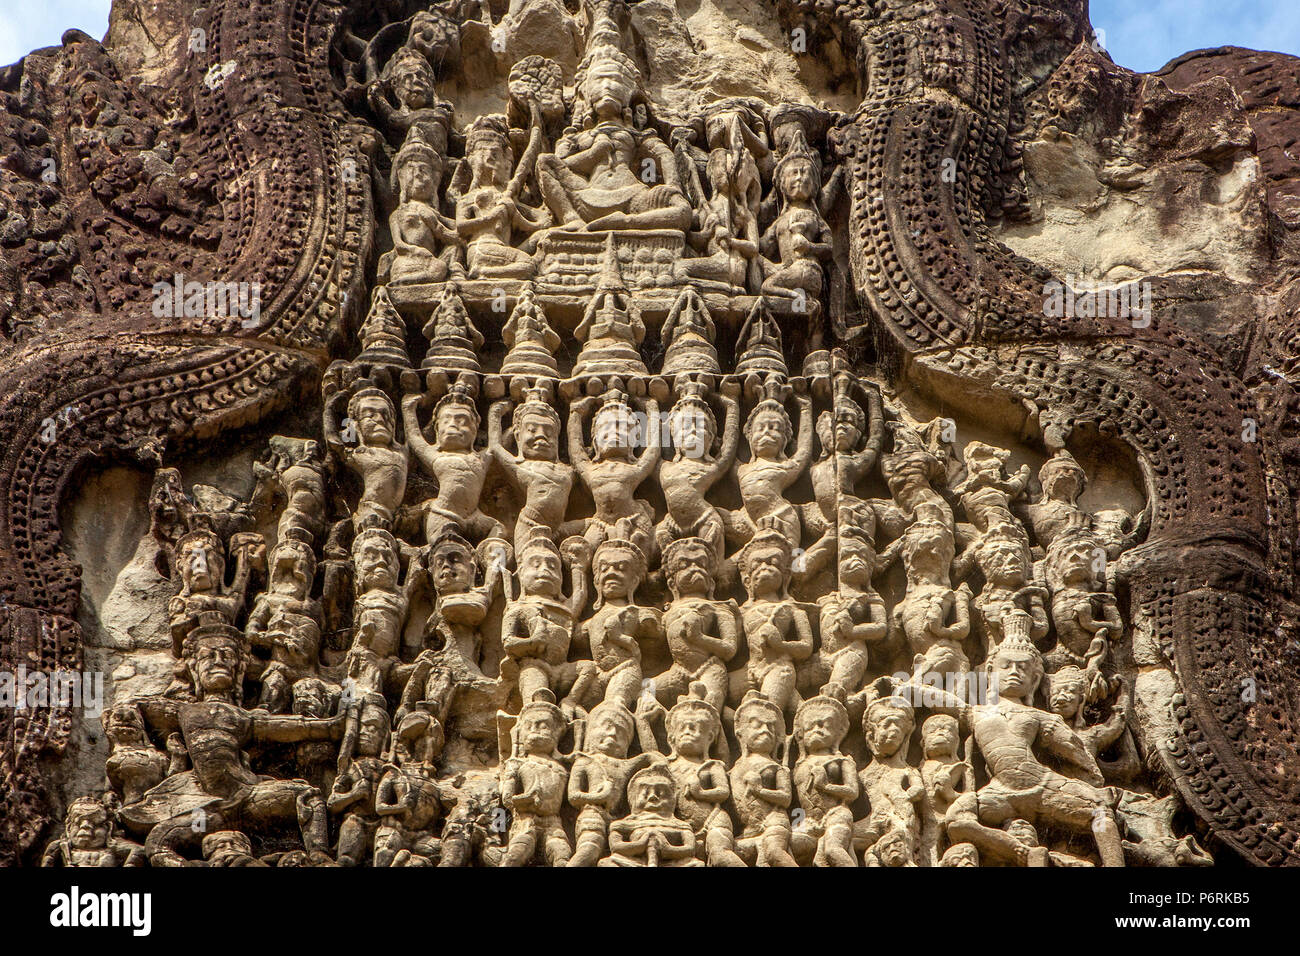 Ornately carved sandstone pediment at Angkor Wat temple at Siem Reap, Cambodia. - Stock Image